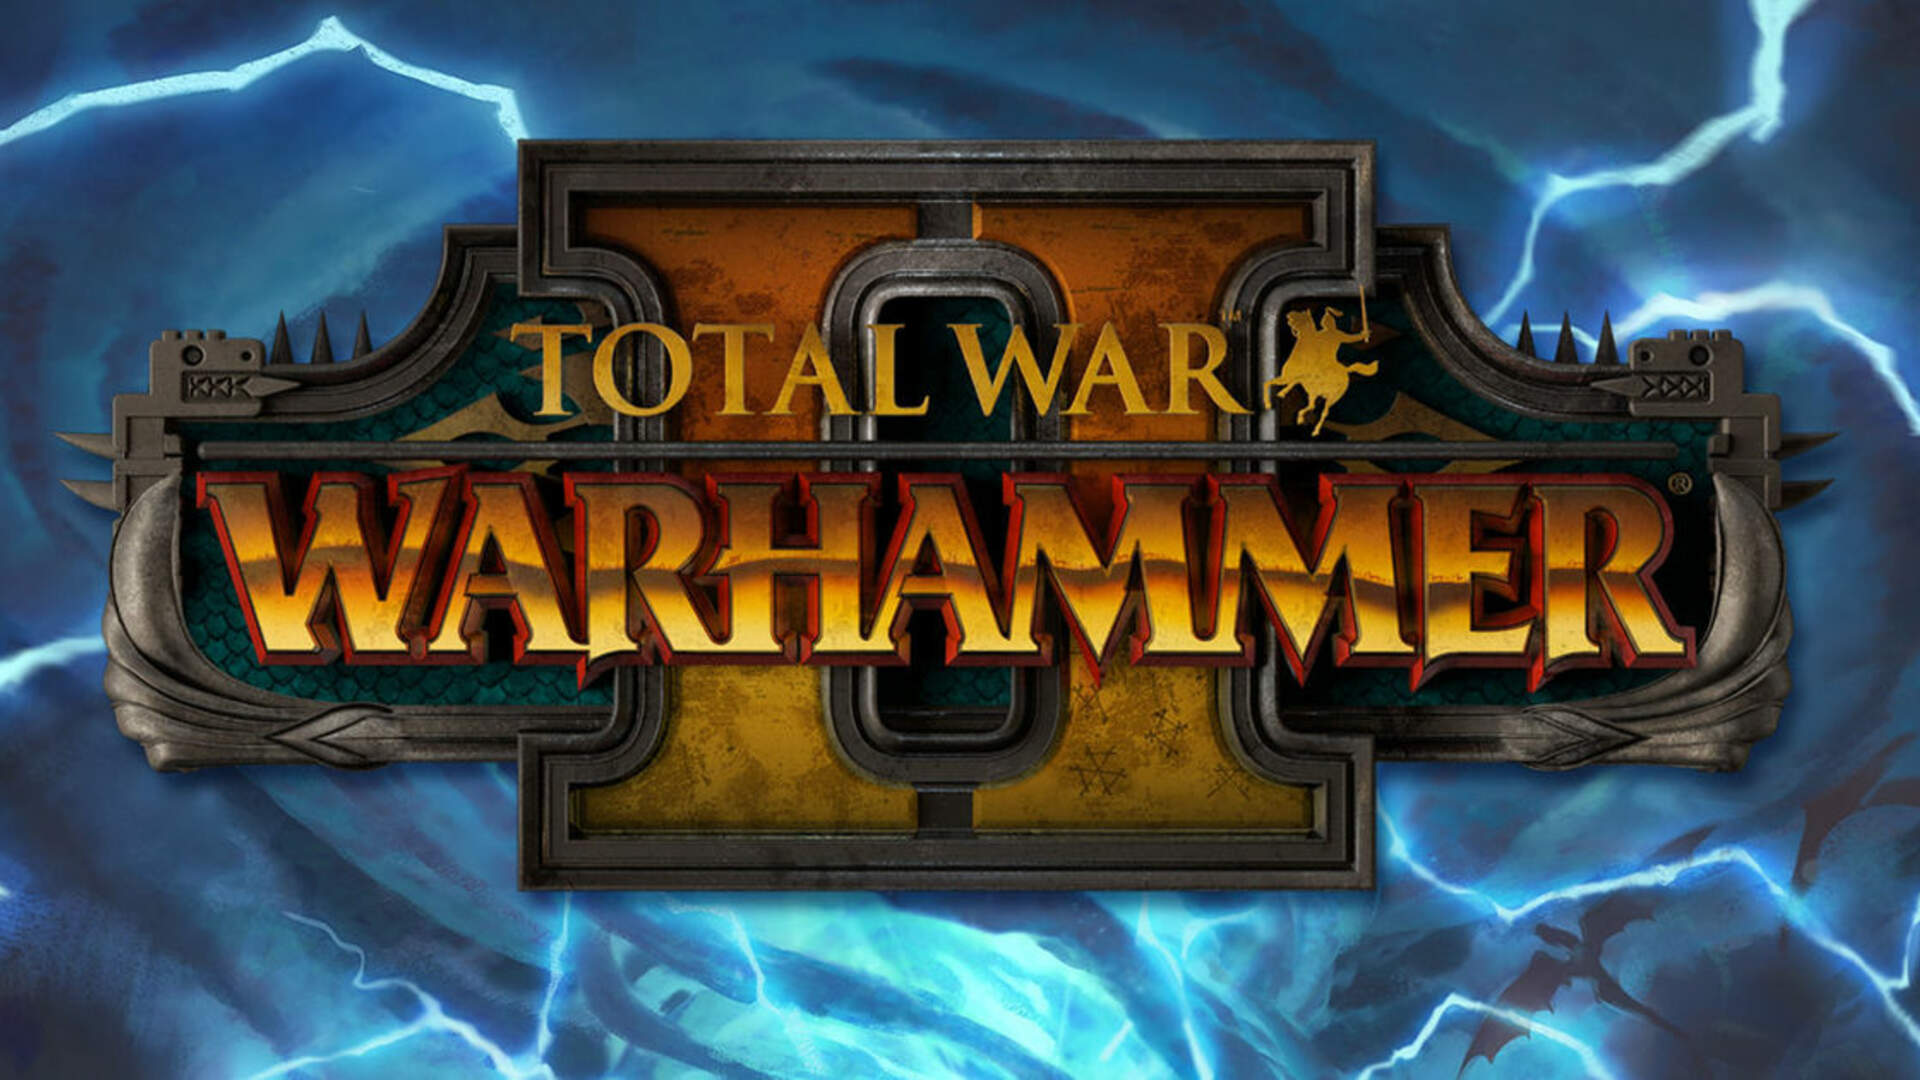 Total War: Warhammer 2 Guide - Release Date, PC Spec Requirements, All Races, Gameplay, Trailers - Everything we Know